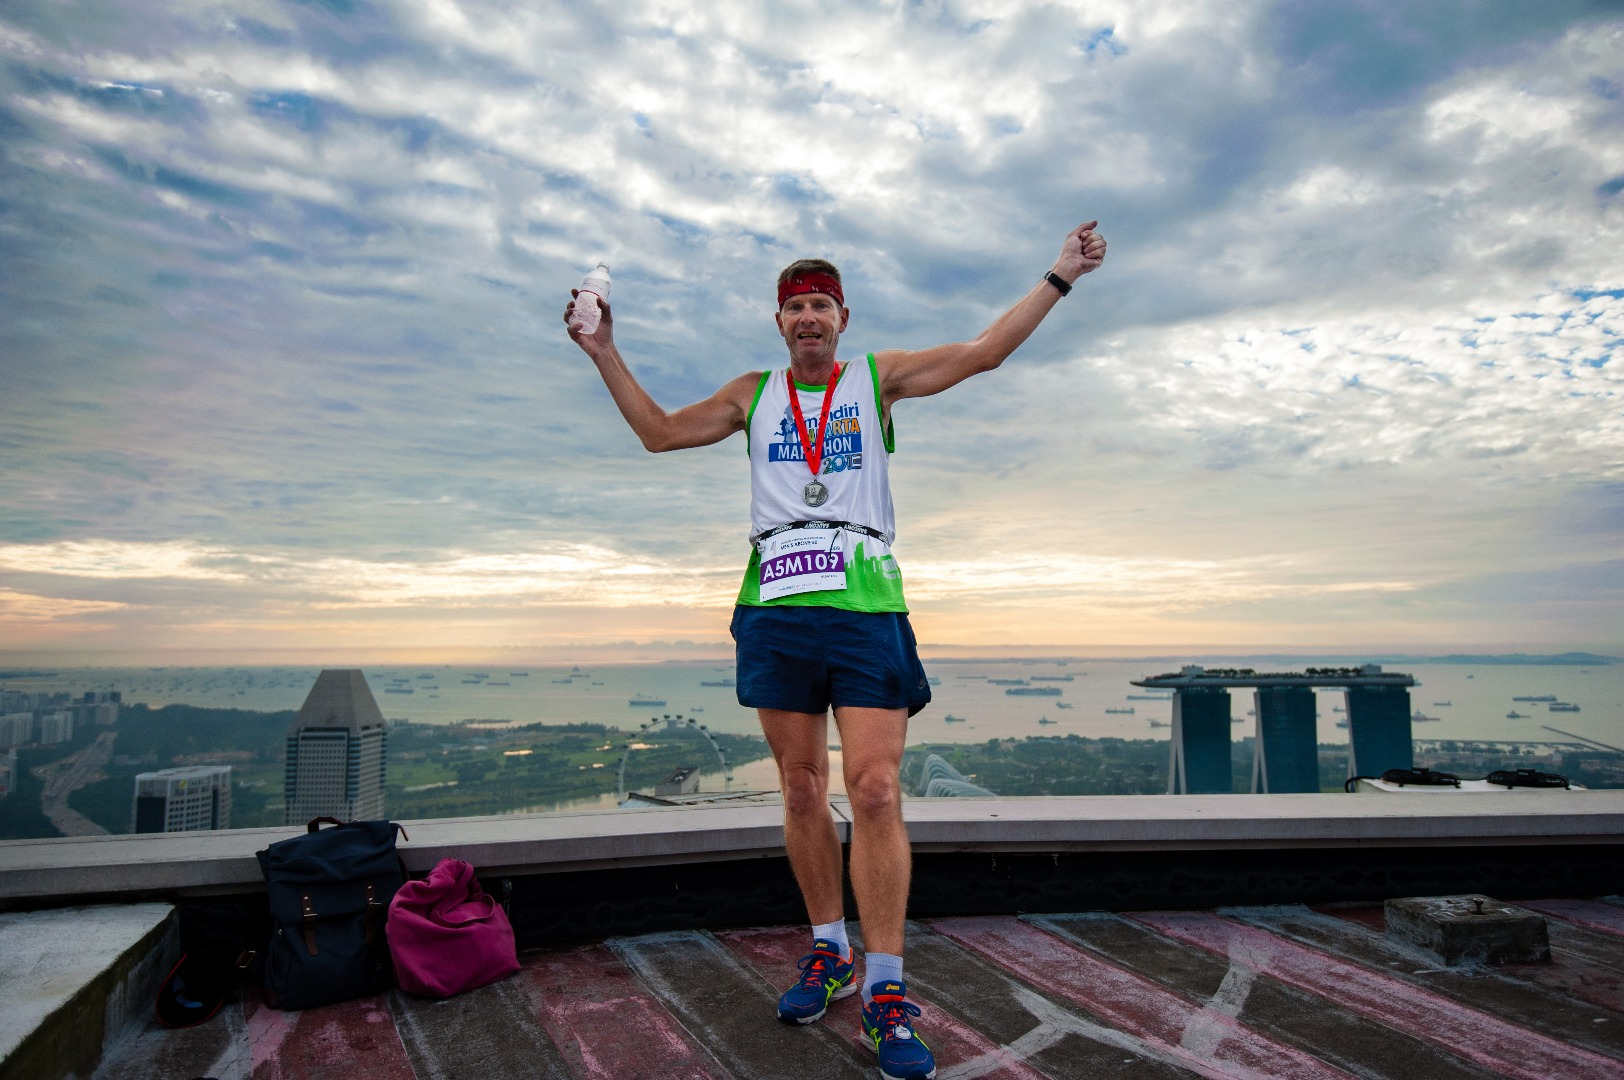 Swissotel Vertical Marathon 24th November 2013 Alan Gwee 09T150624